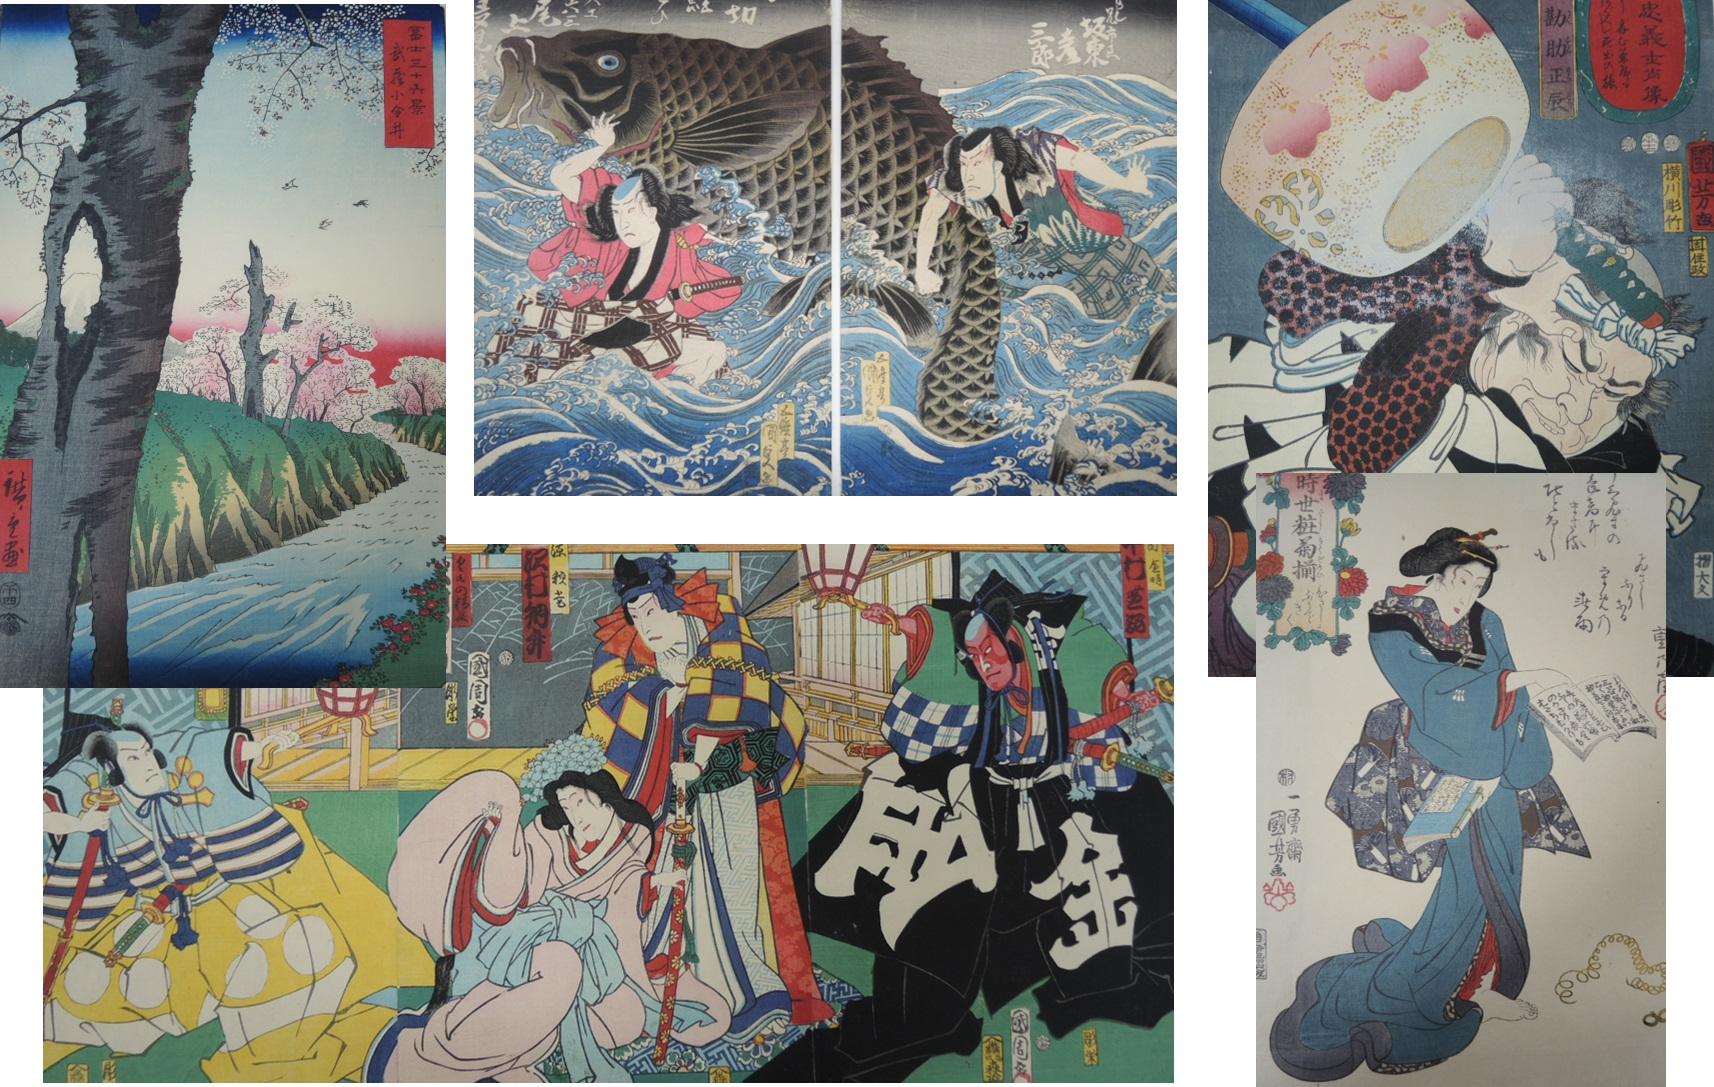 A selection of the single, diptych and triptych Japanese woodblock prints that are to go on display in the new East Asia Gallery.